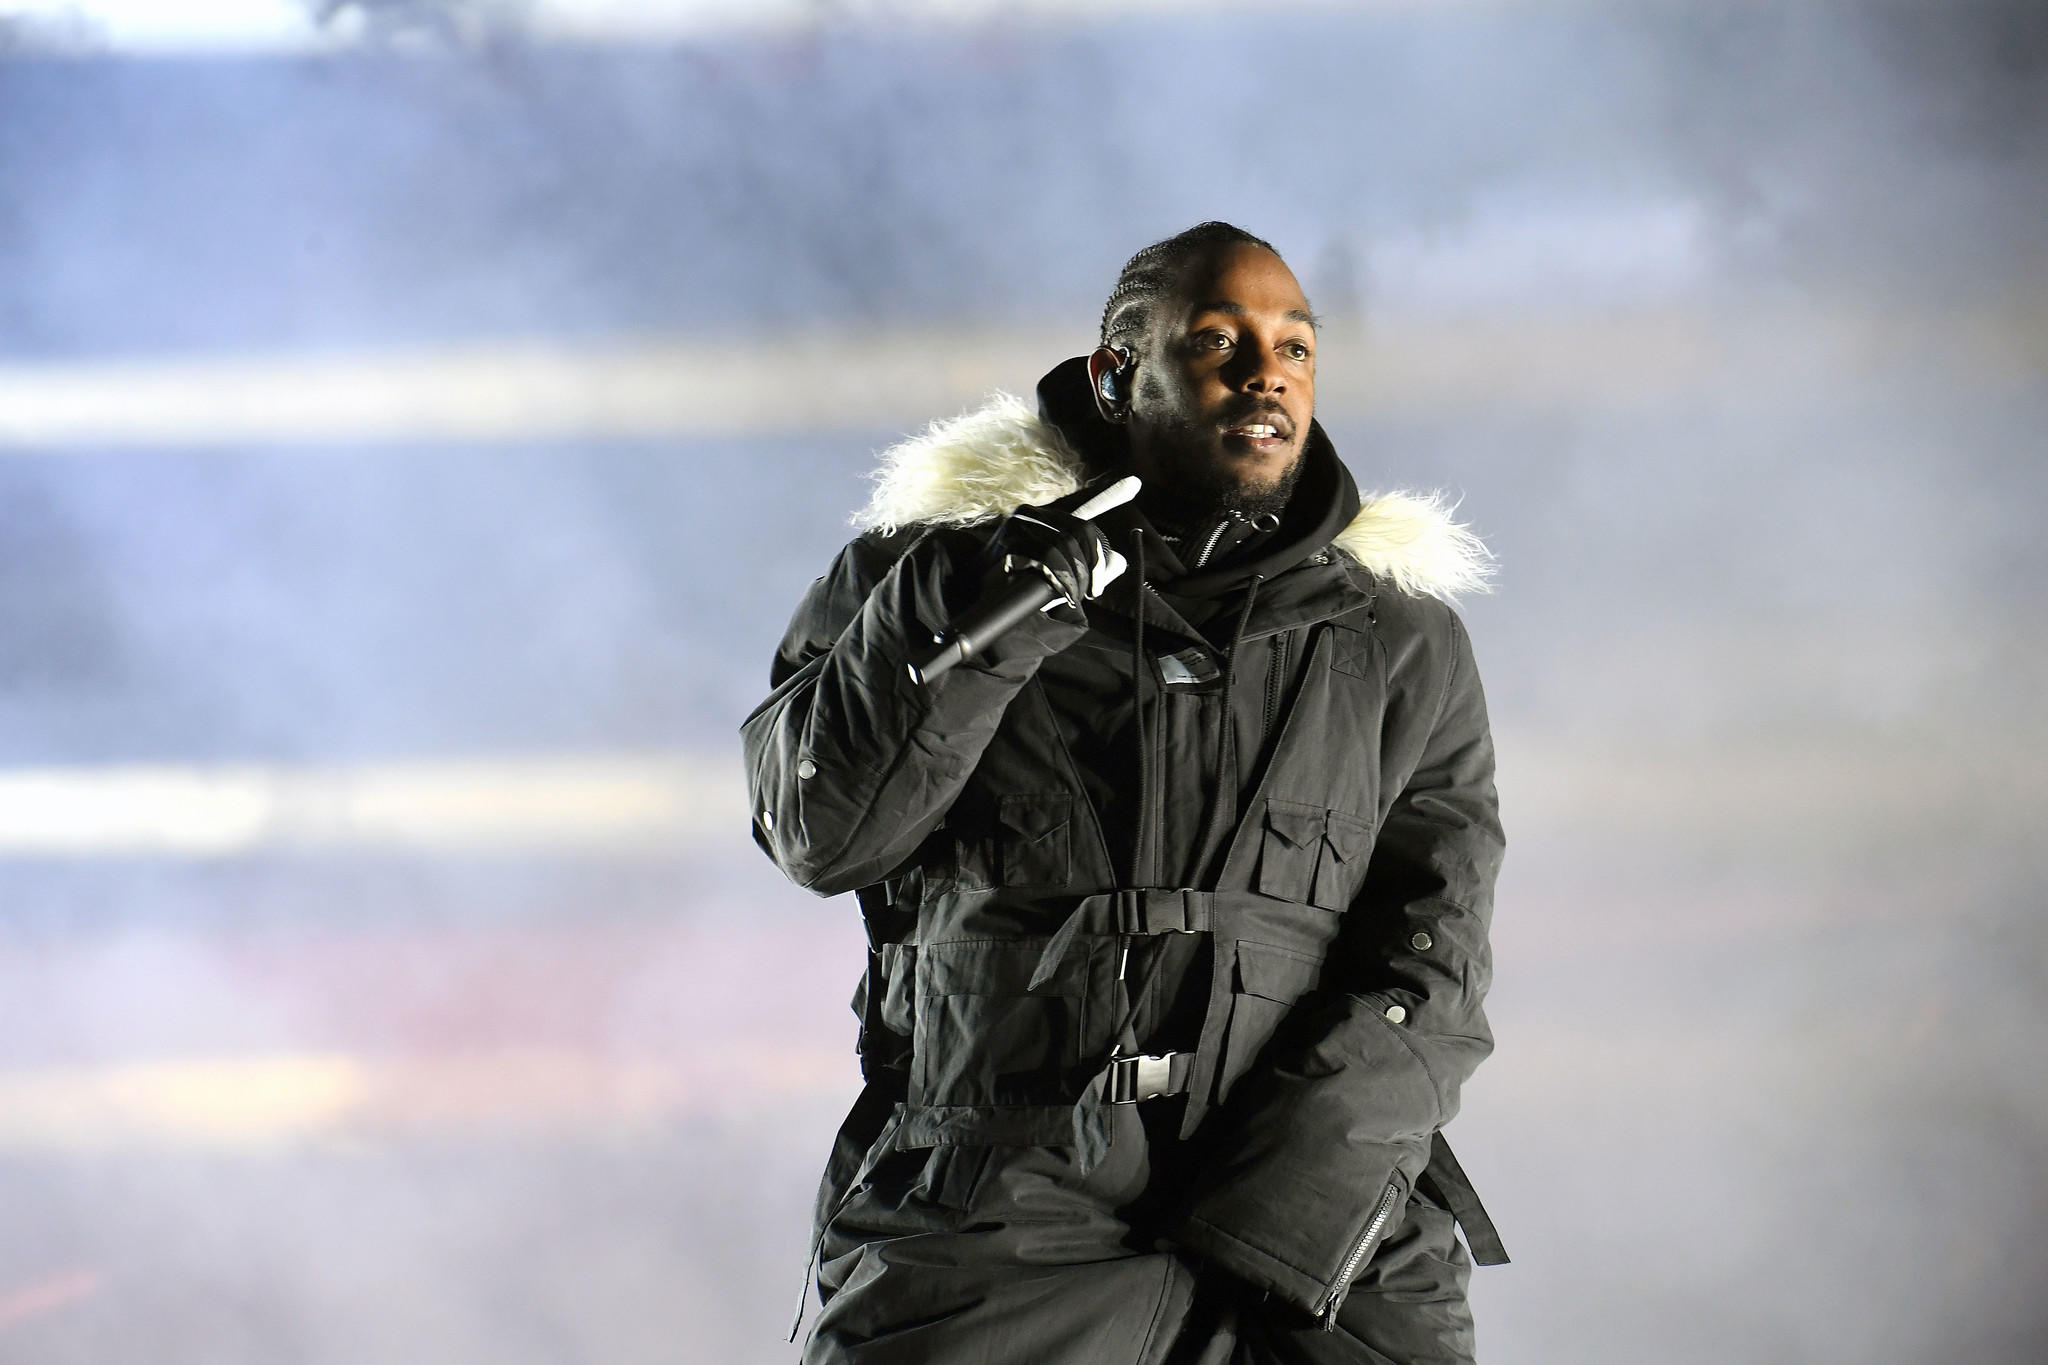 Kendrick Lamar will perform live at the Grammy Awards on Jan. 28. (Paras Griffin / Getty Images)